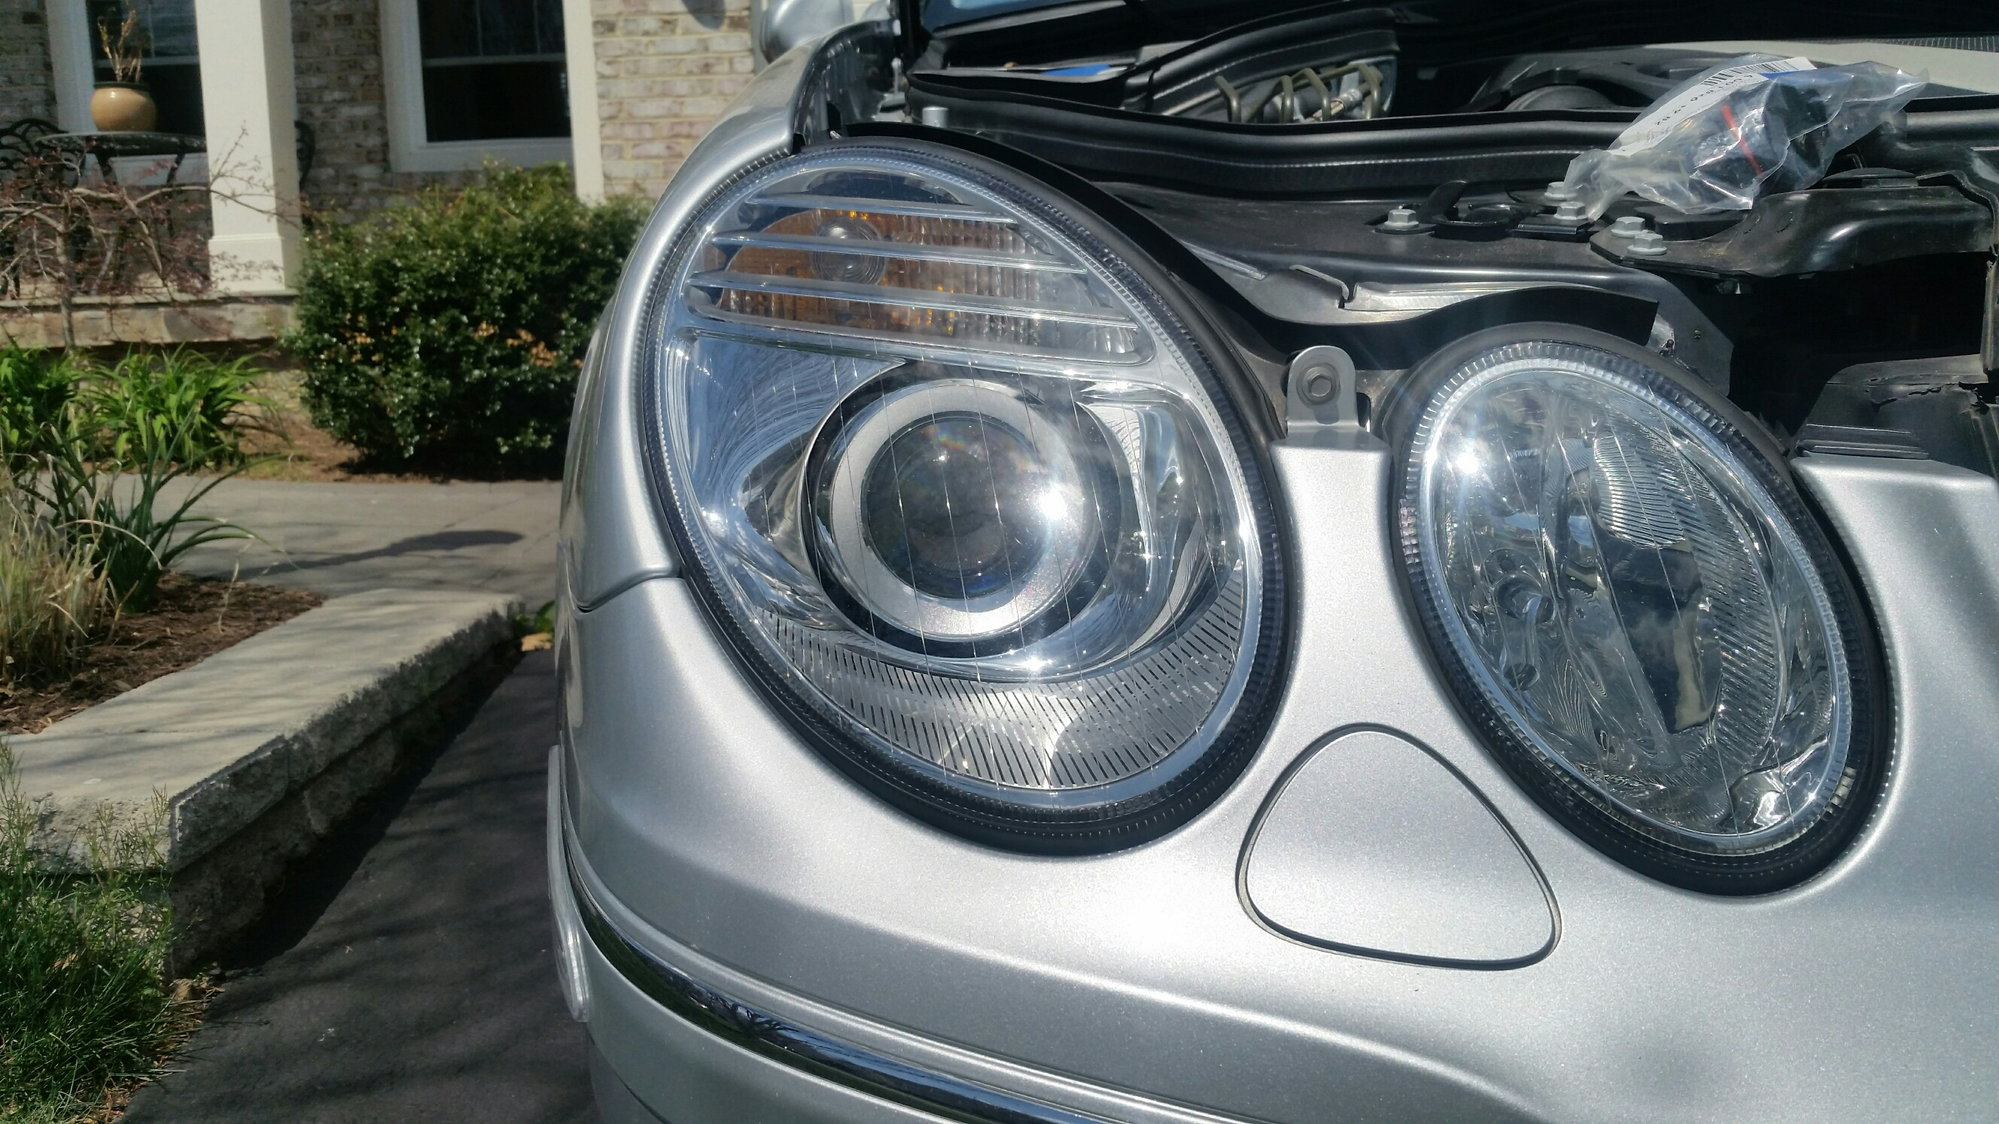 Turn signal bulb replacement - MBWorld org Forums